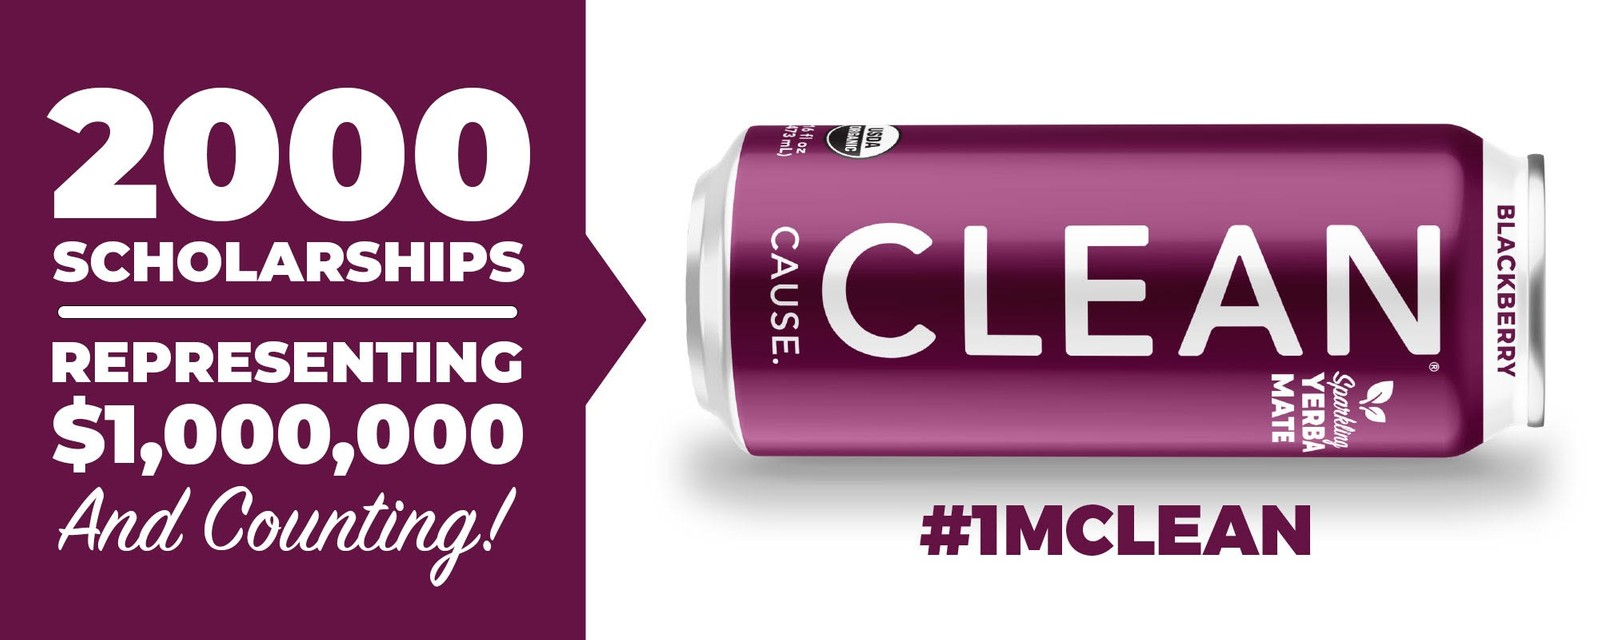 Clean Cause Achieves $1MM Milestone In Drug & Alcohol Recovery Aid